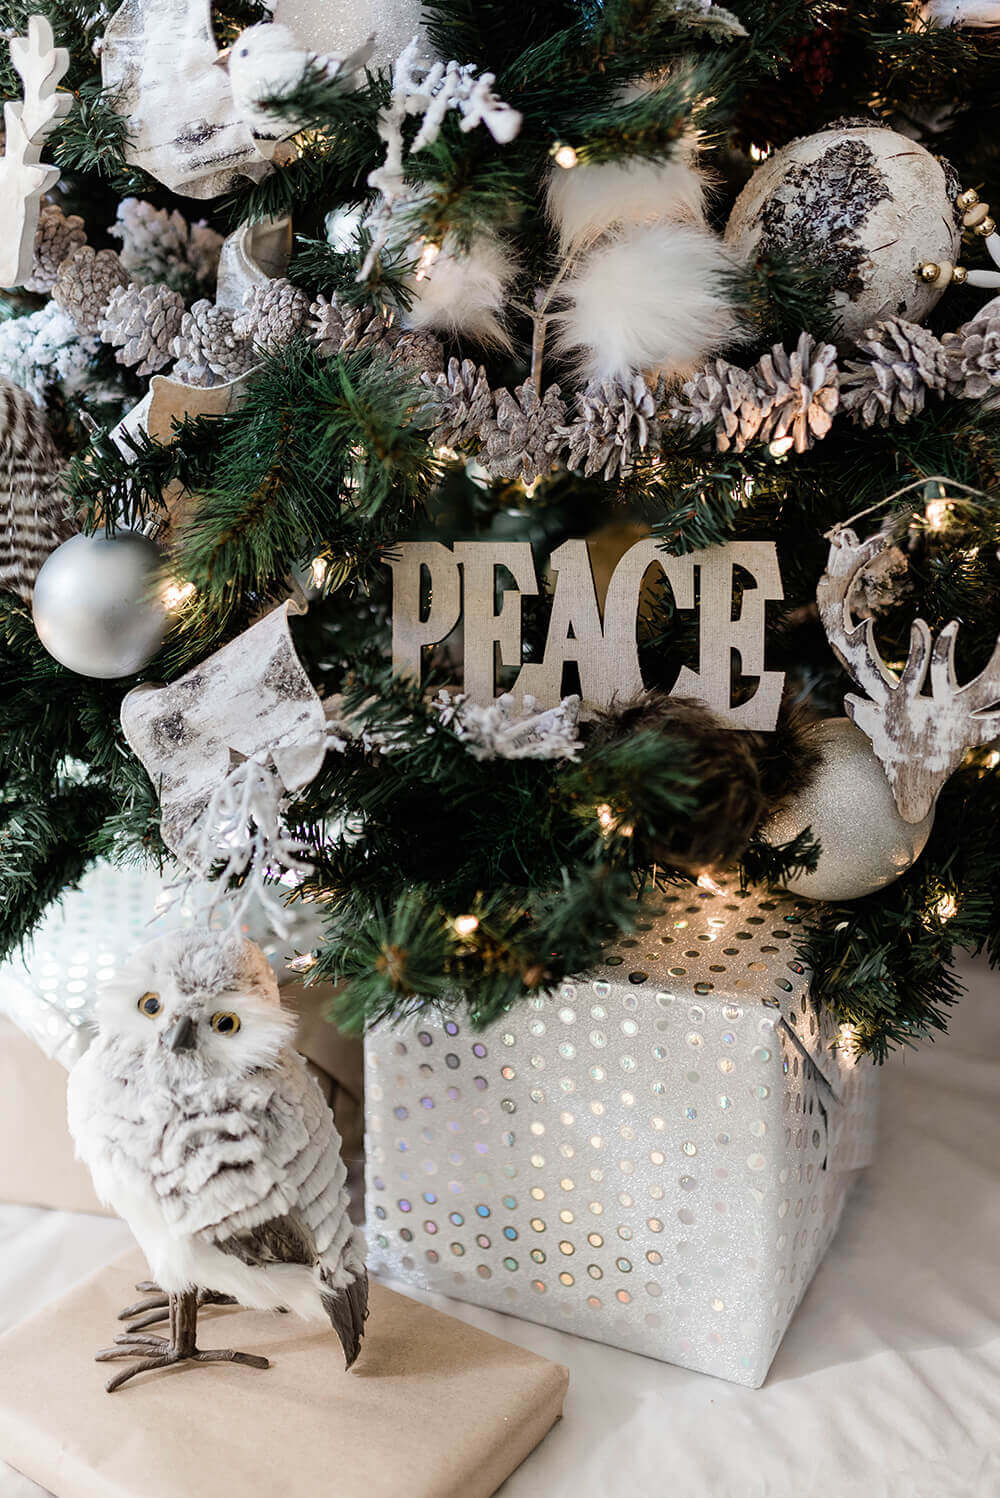 Try Peace on Earth for your Woodland tree